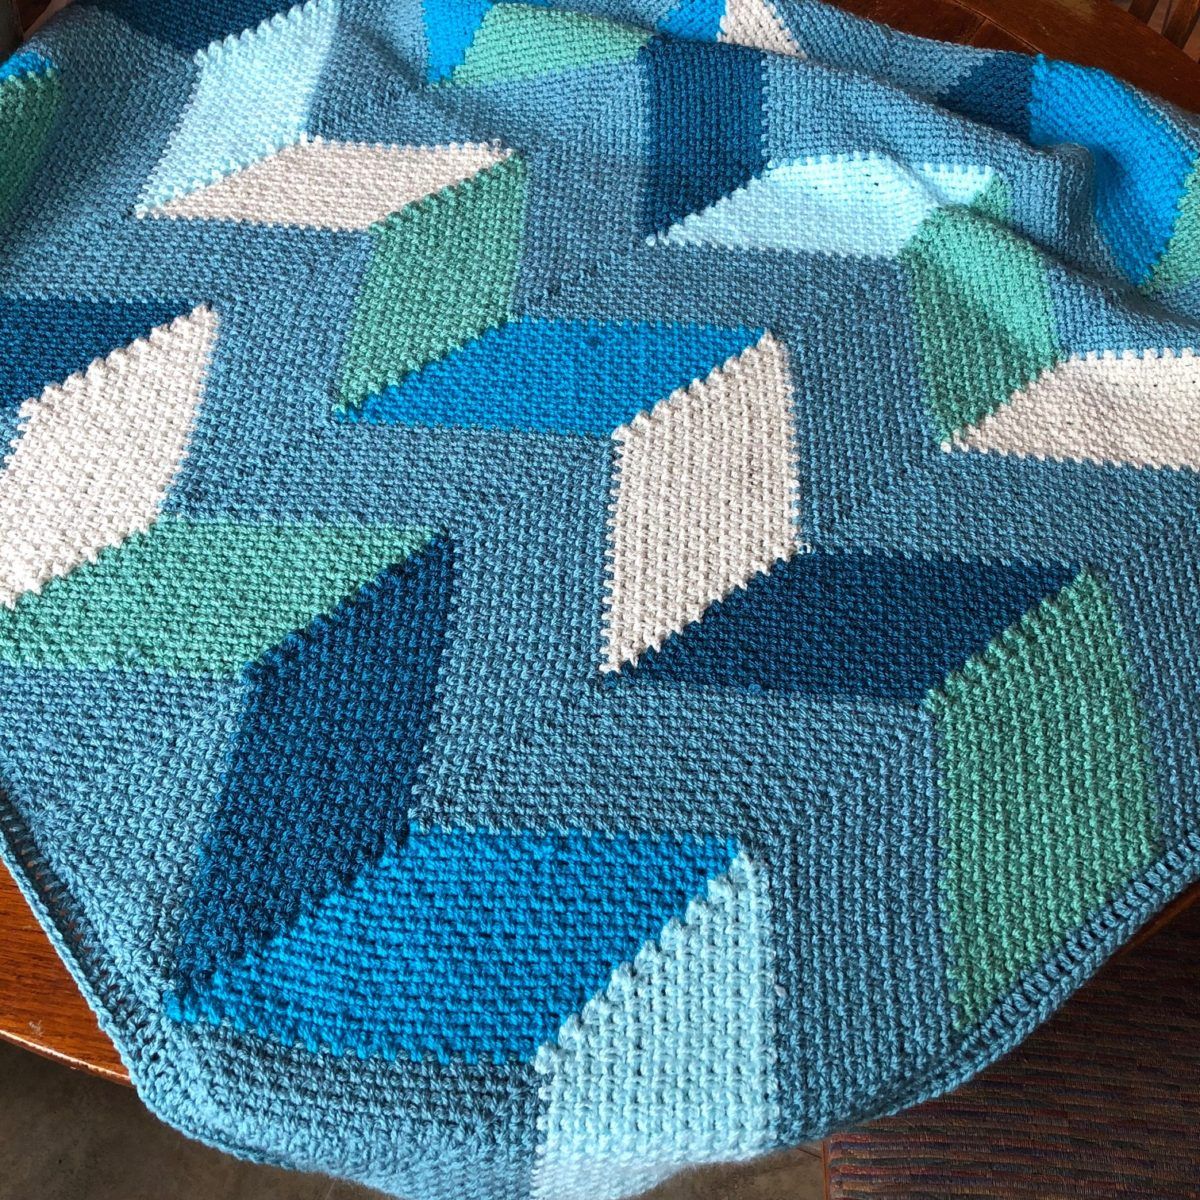 Beach Hut Crochet Blanket Pattern made with Scheepjes Colour Crafter